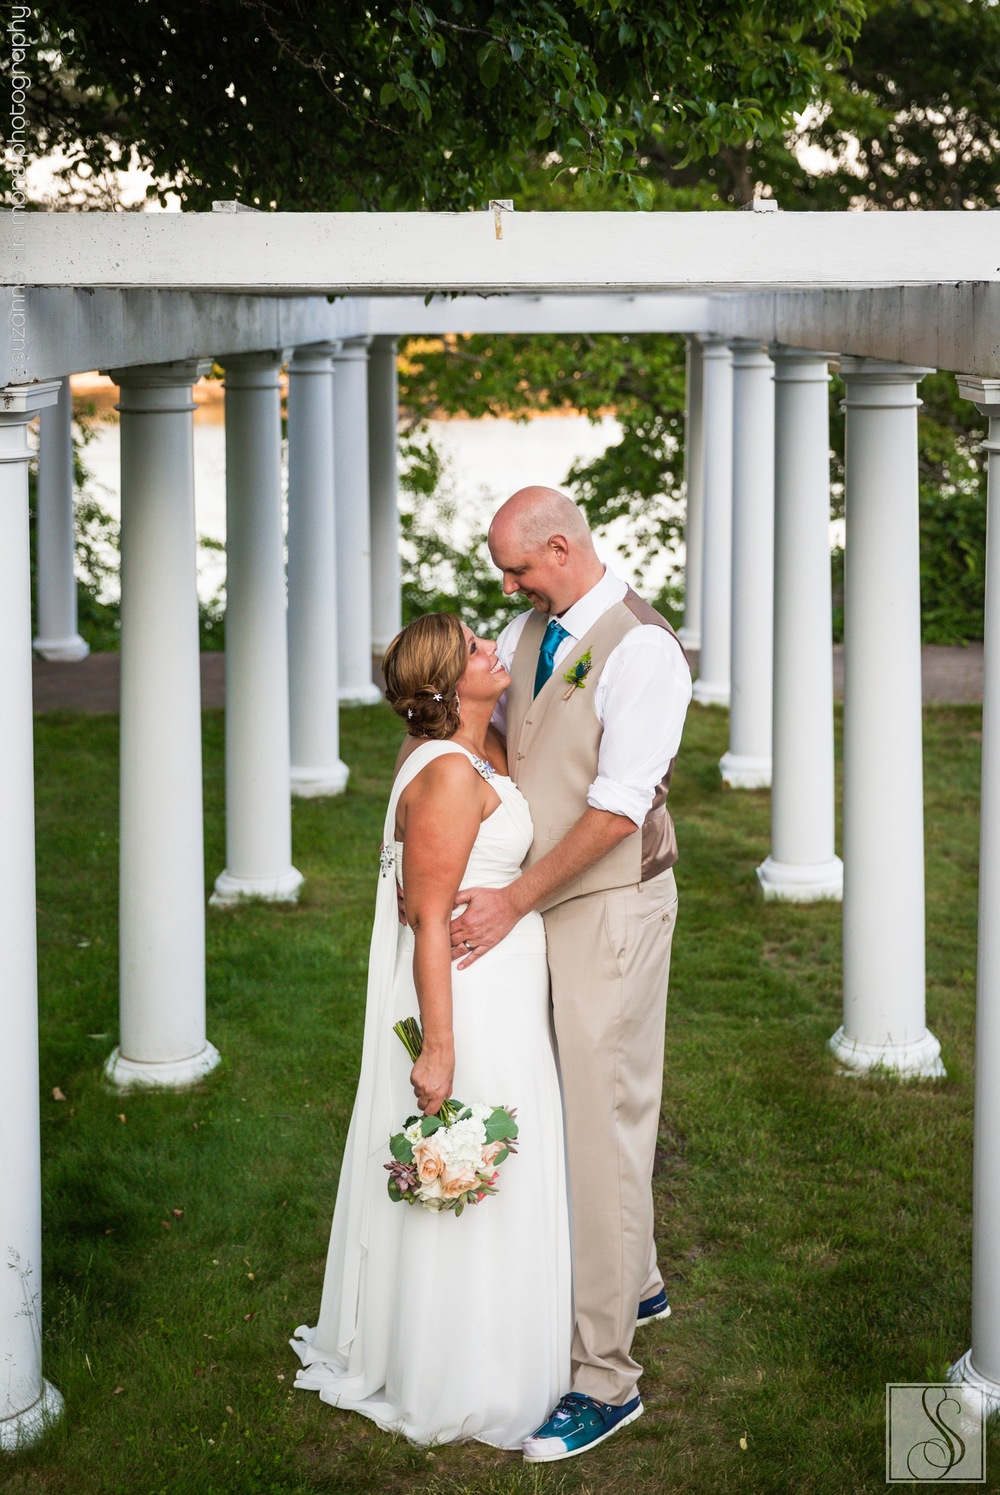 Maine Wedding at The Mooring Bed & Breakfast